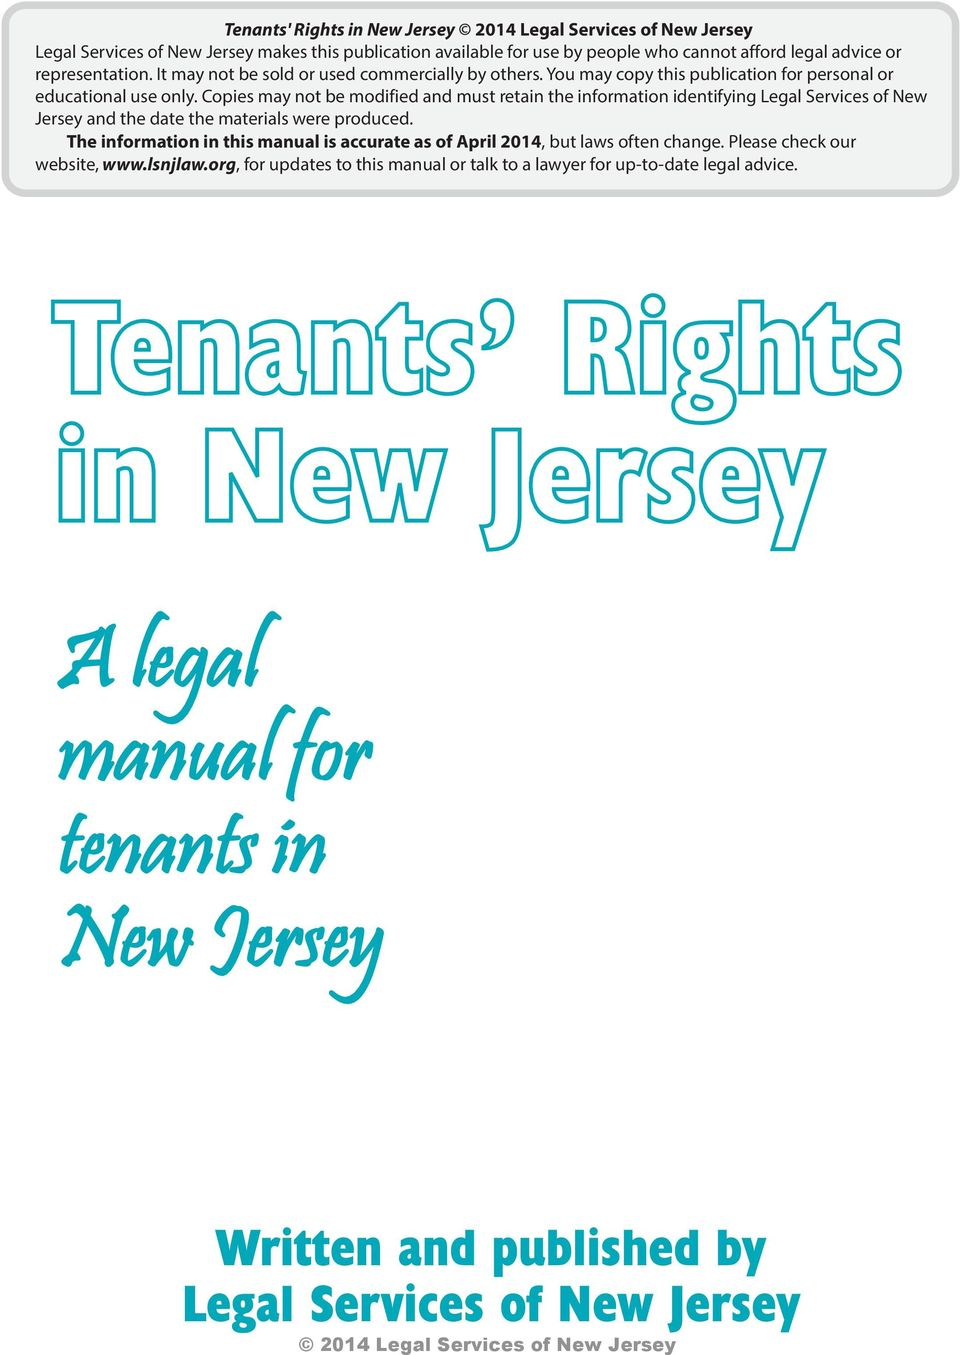 Copies may not be modified and must retain the information identifying Legal Services of New Jersey and the date the materials were produced.